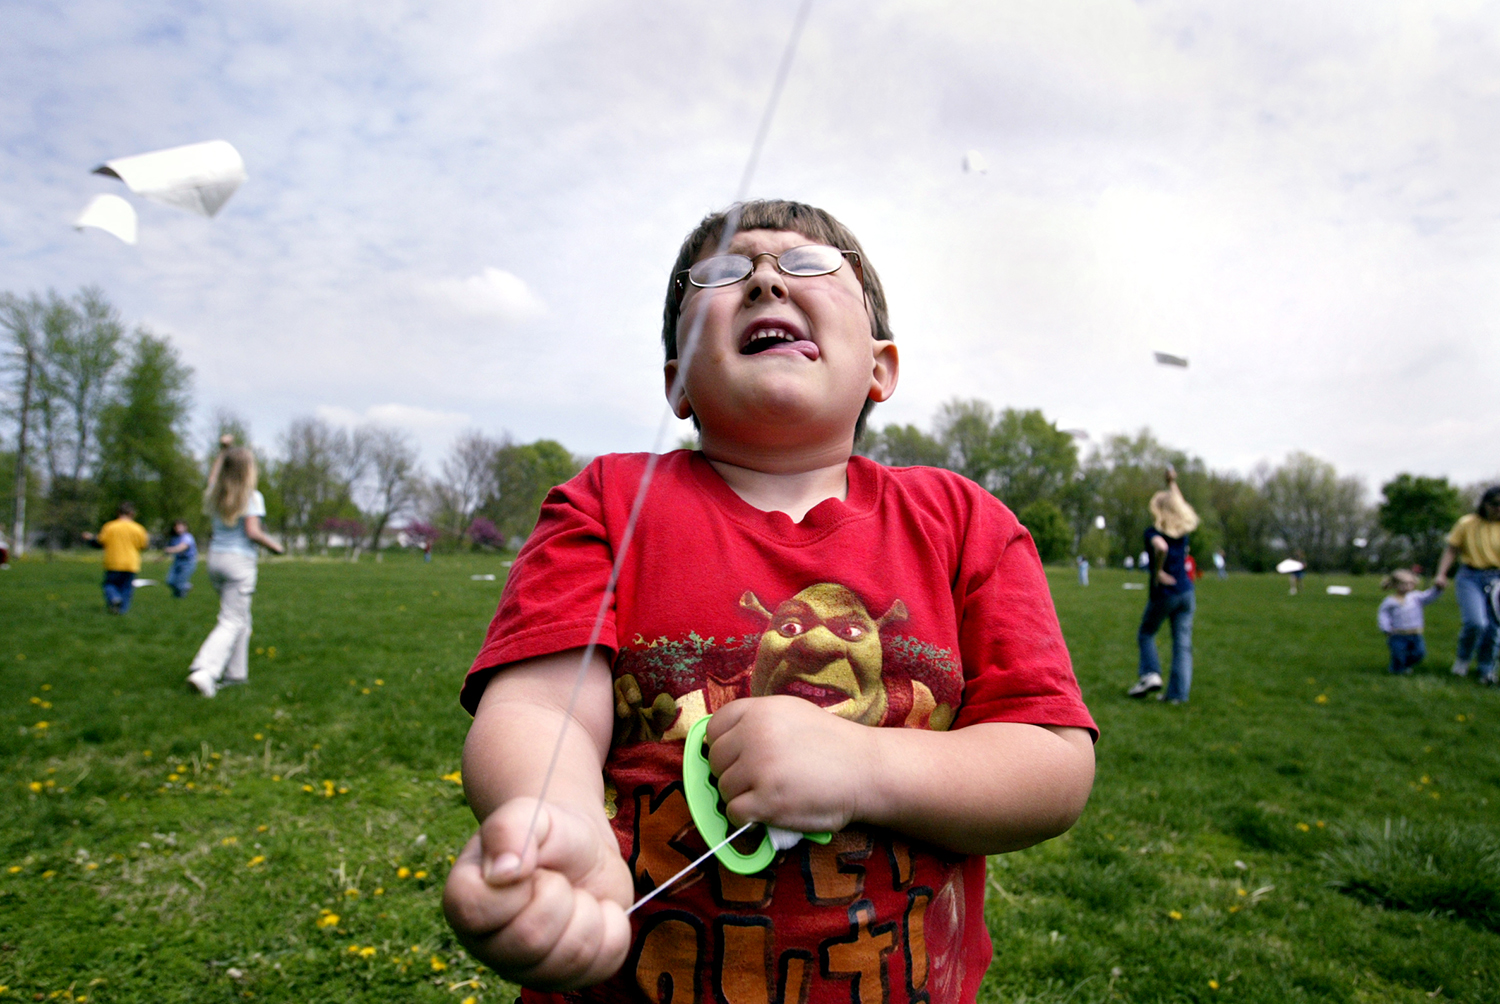 Garrett Gerdes, 5, a kindergartener at Tallula Elementary School, flies his kite during an annual kite flying event at the school. Michael Brown/The State Journal-Register